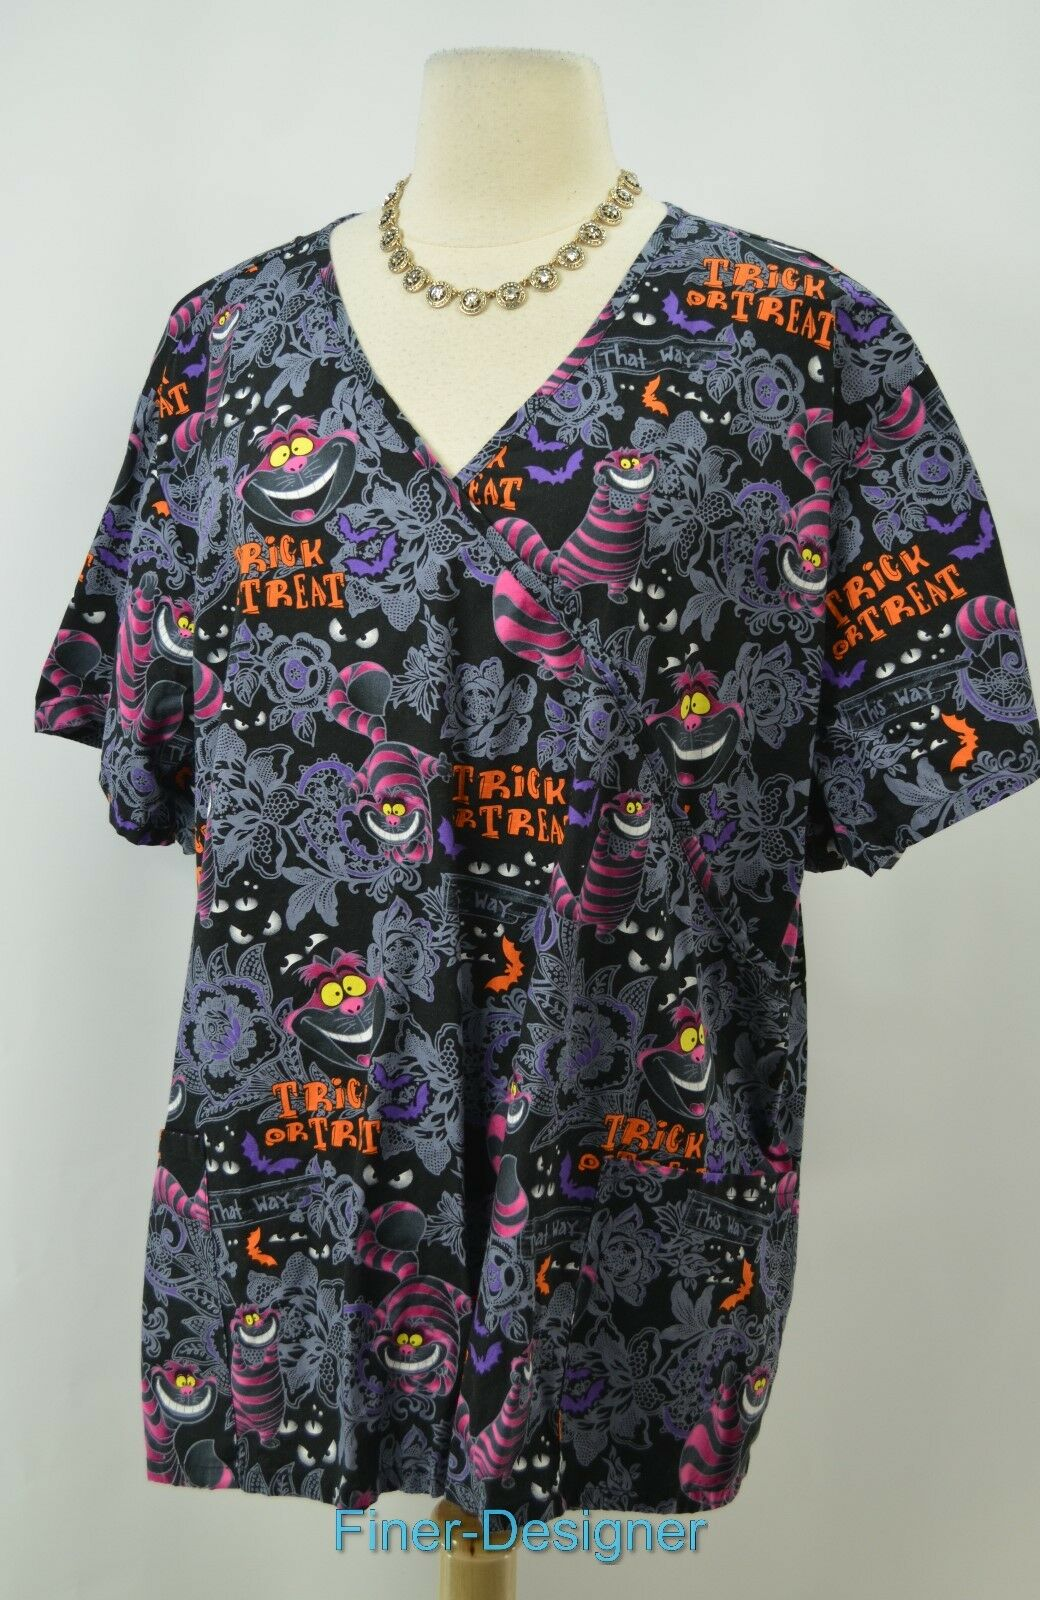 disney halloween scrubs top alice in wonderland cheshire cat blouse shirt 3x new